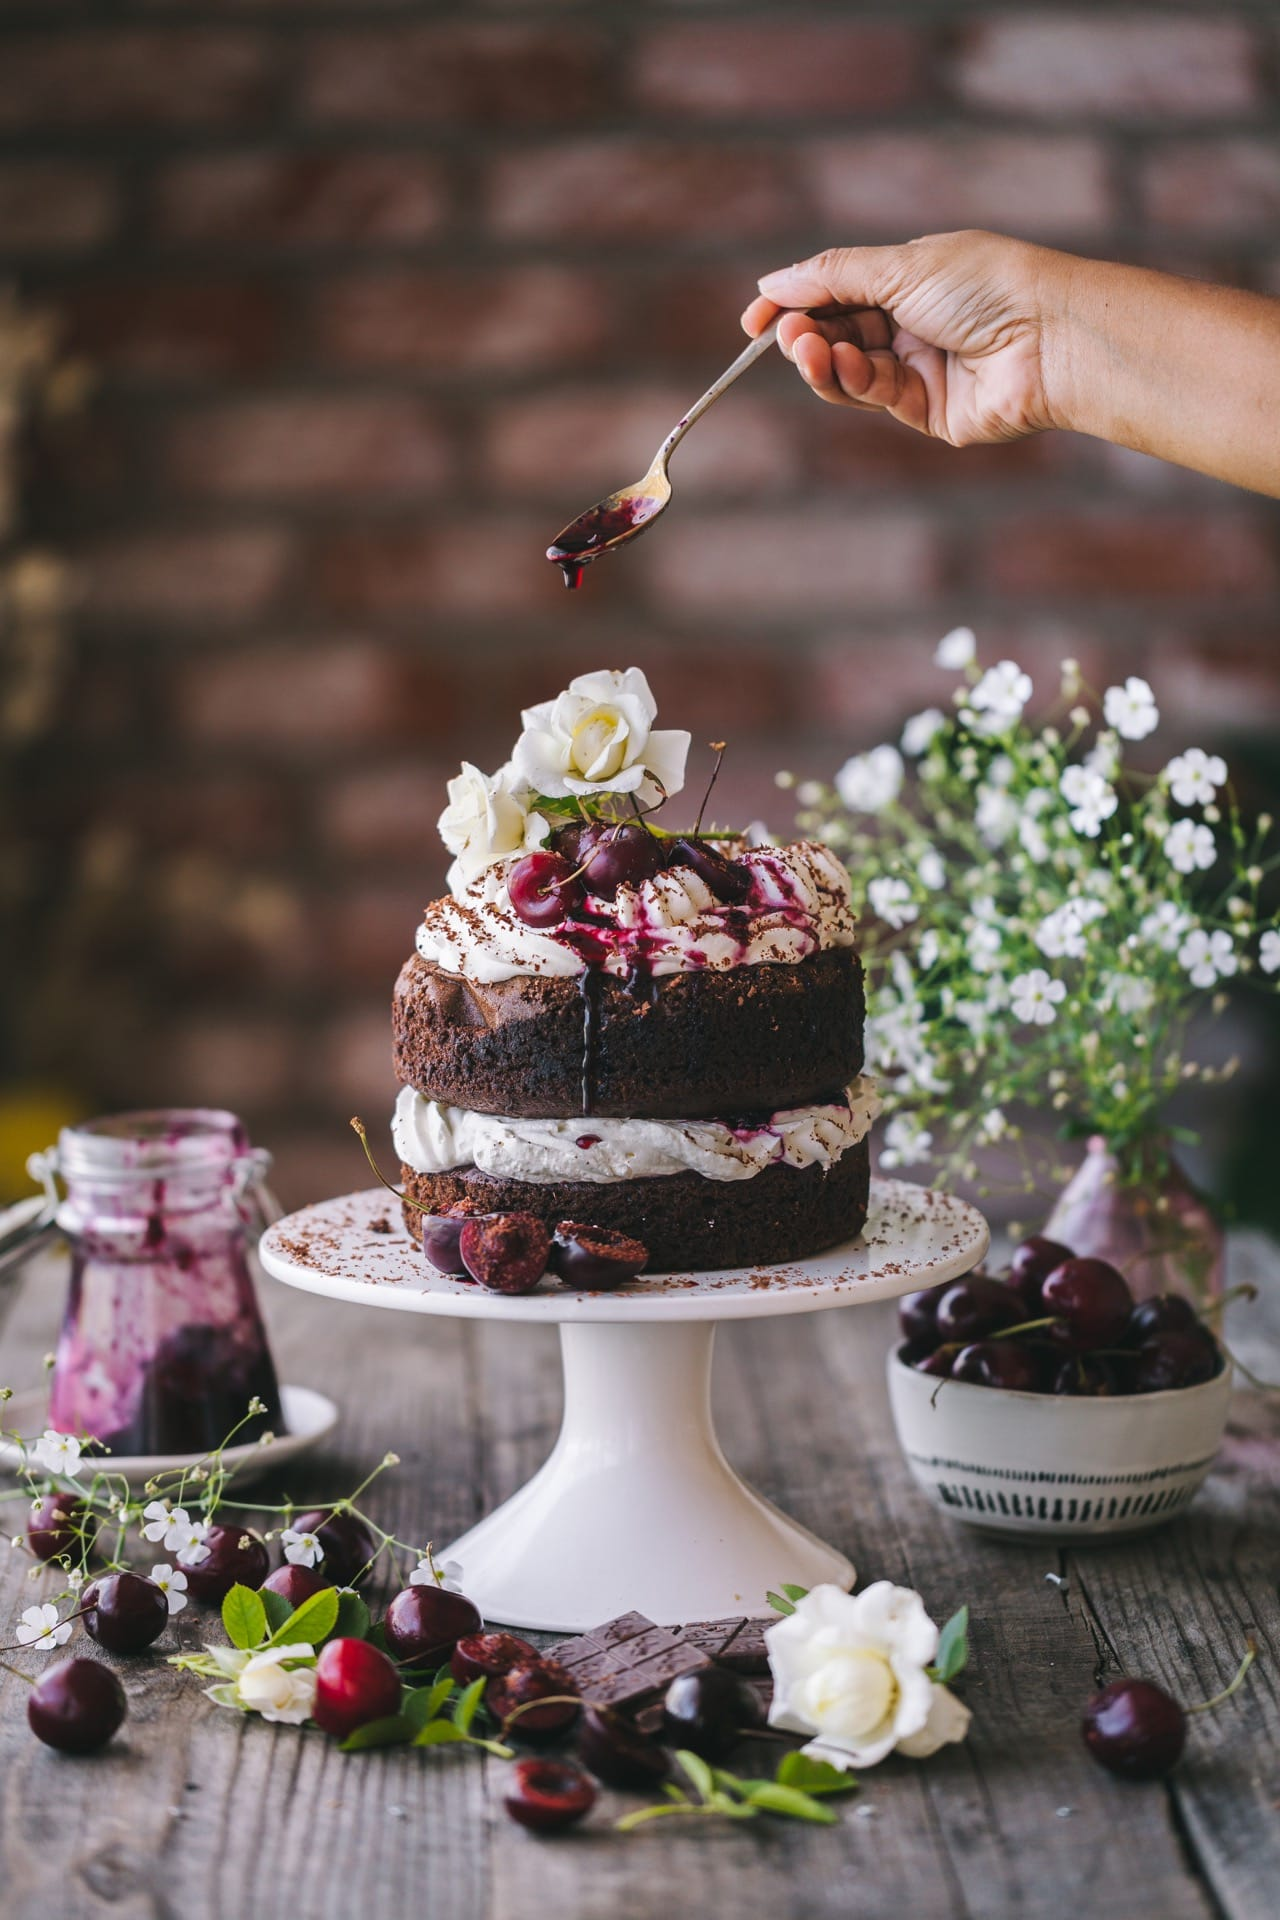 Food Photography of Chocolate Cherry Cake!